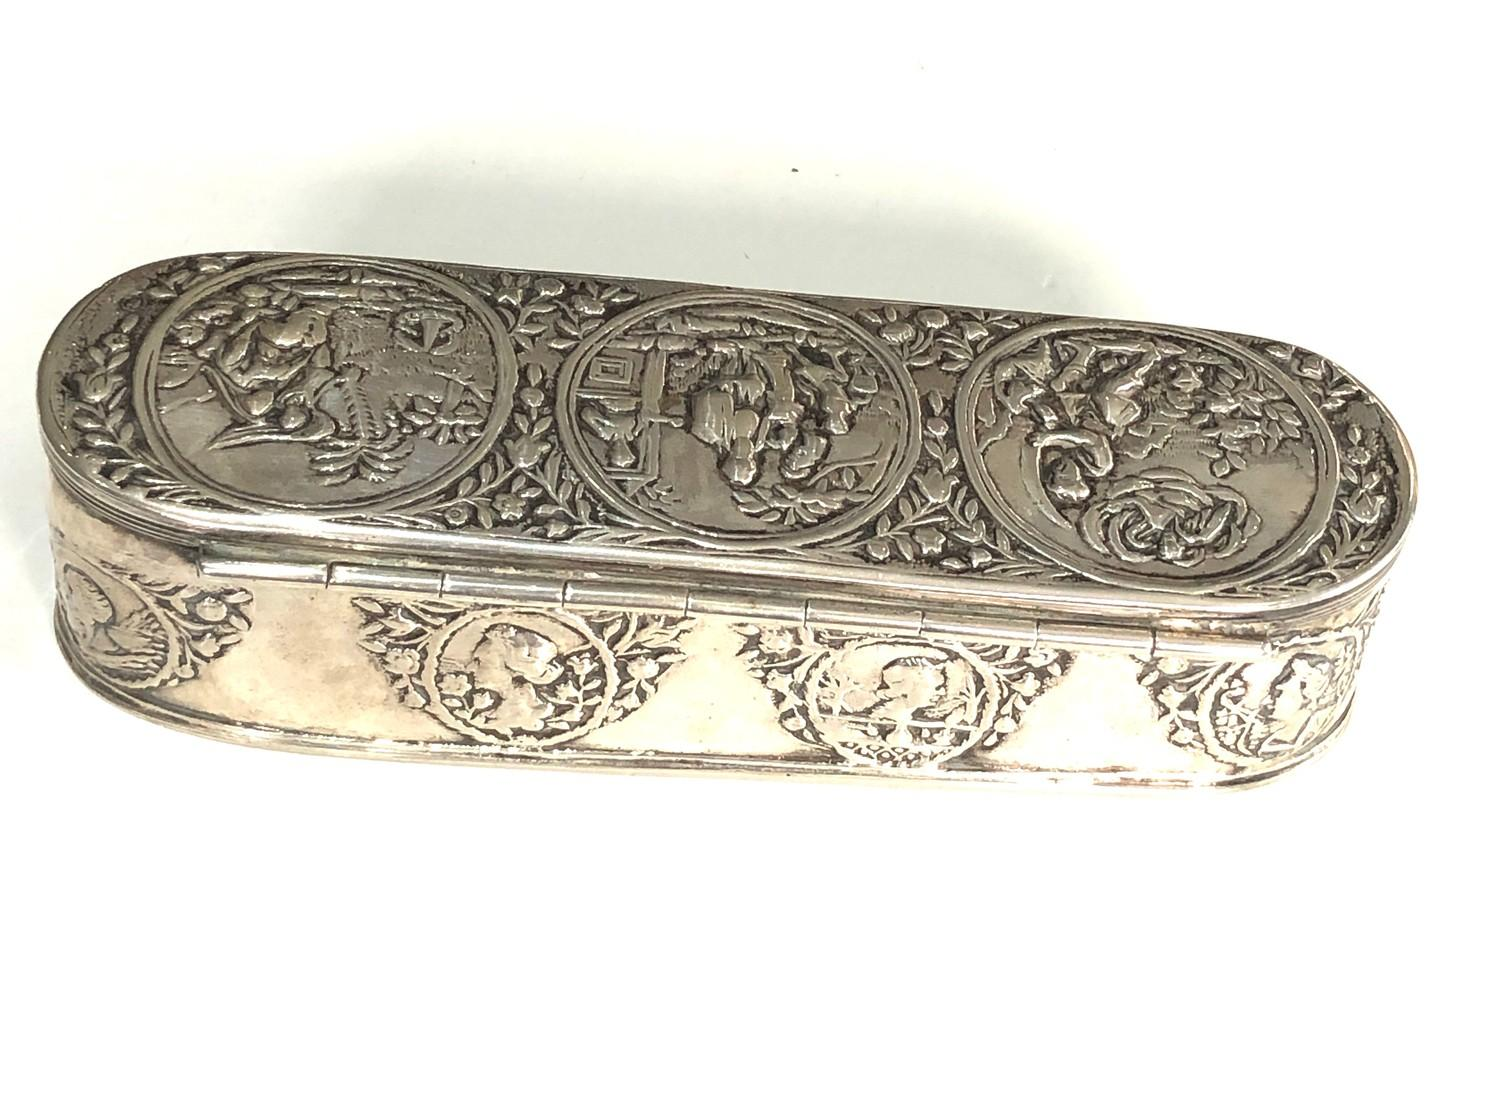 Antique Dutch silver tobacco box the hinged cover chased with scenes measures approx 16cm by 5cm 3. - Image 3 of 14